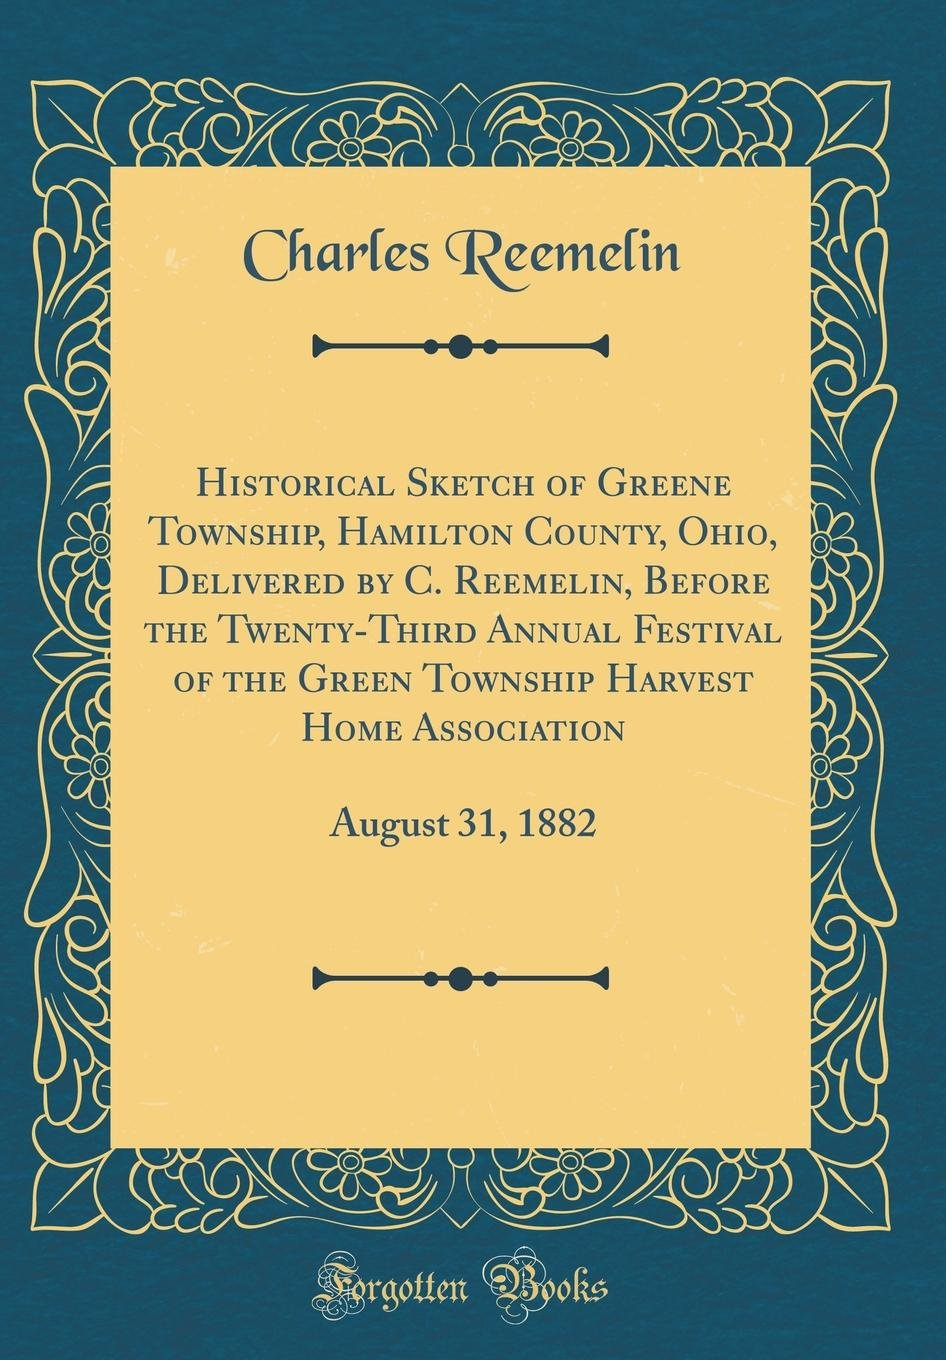 Download Historical Sketch of Greene Township, Hamilton County, Ohio, Delivered by C. Reemelin, Before the Twenty-Third Annual Festival of the Green Township ... August 31, 1882 (Classic Reprint) ebook